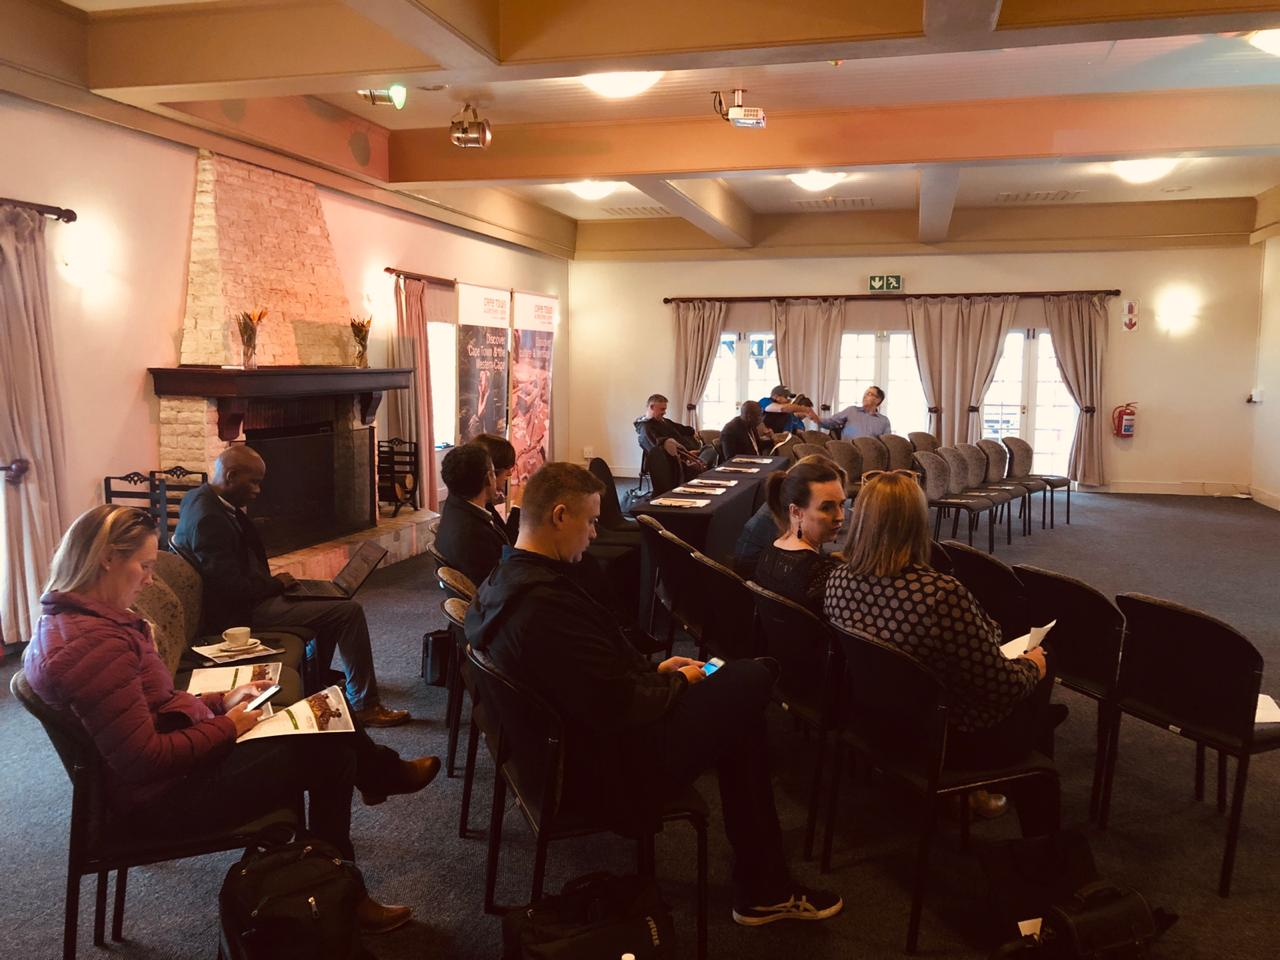 Western Cape Travel Trade Meeting in Caledon attended by Patty Butterworth